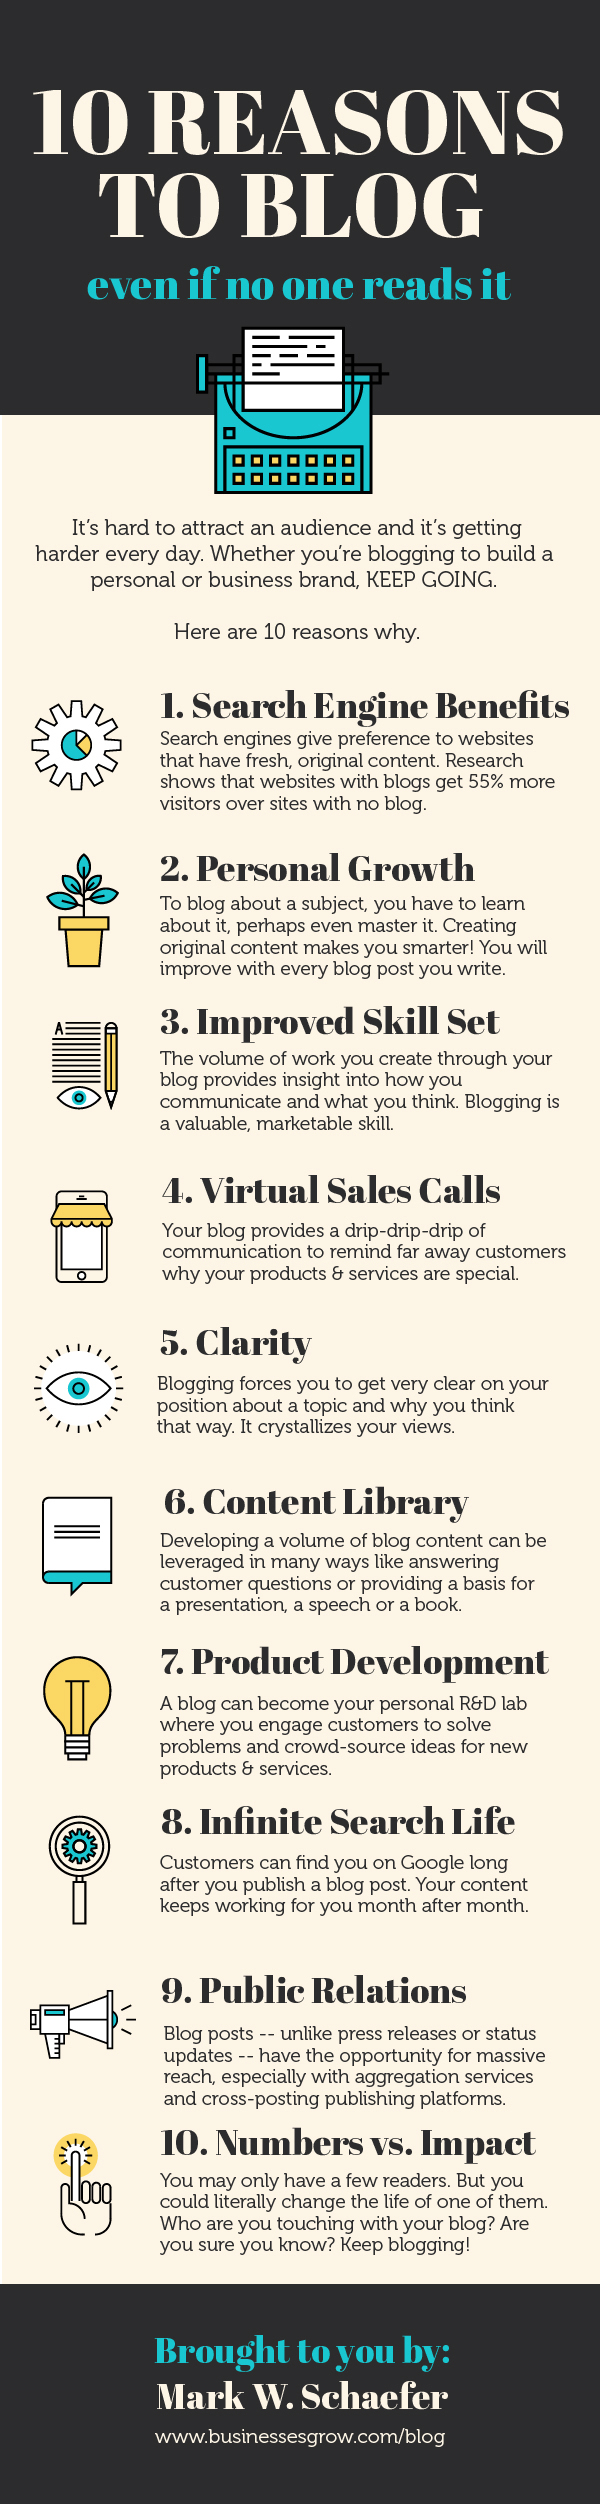 10 Reasons You Must Blog Even if Nobody Reads Your Posts